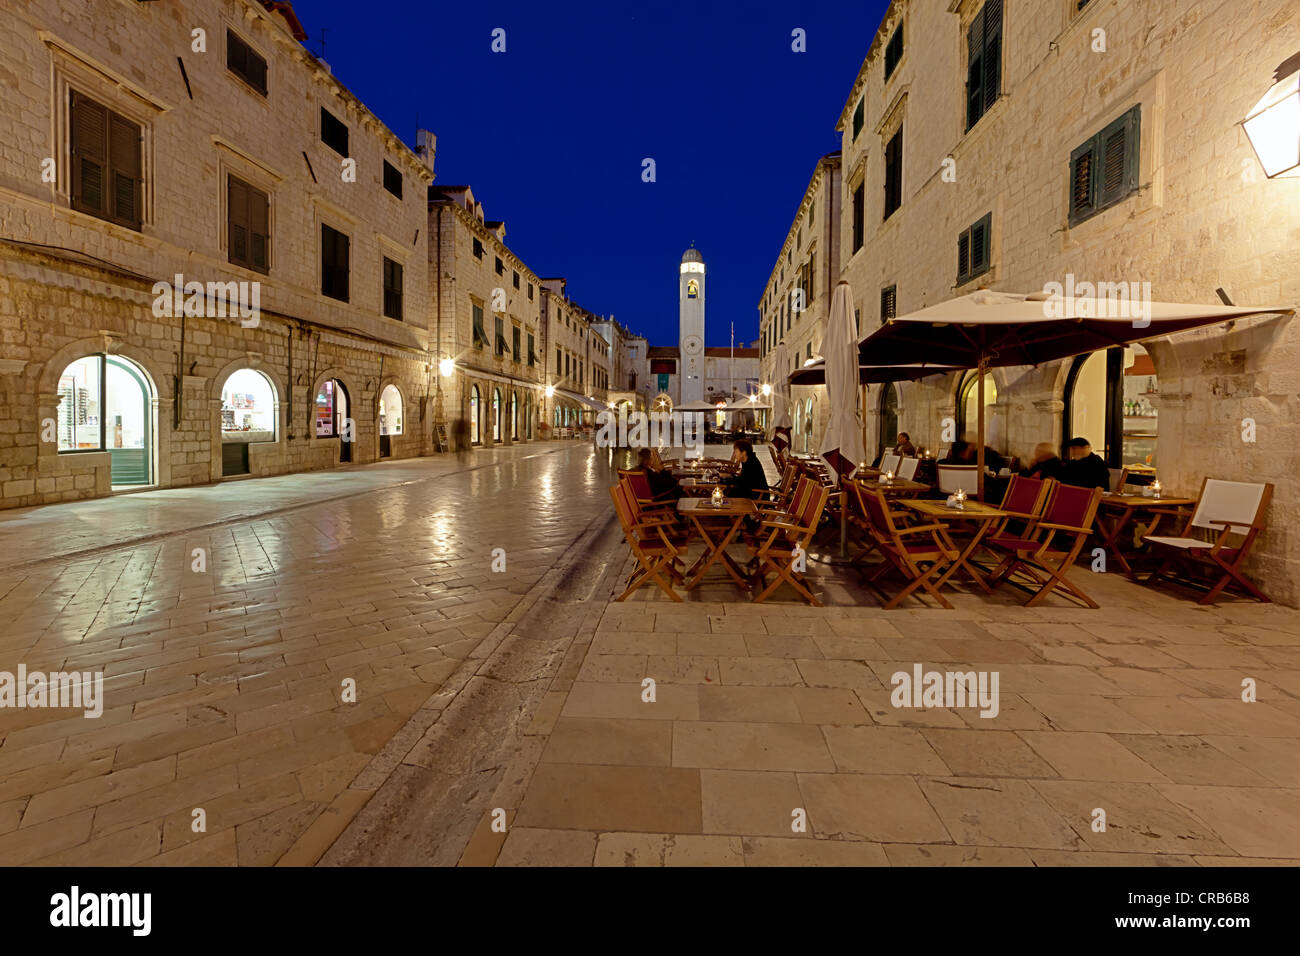 Restaurant in the old town of Dubrovnik at night, UNESCO World Heritage Site, bell tower and Sponza Palace at back - Stock Image